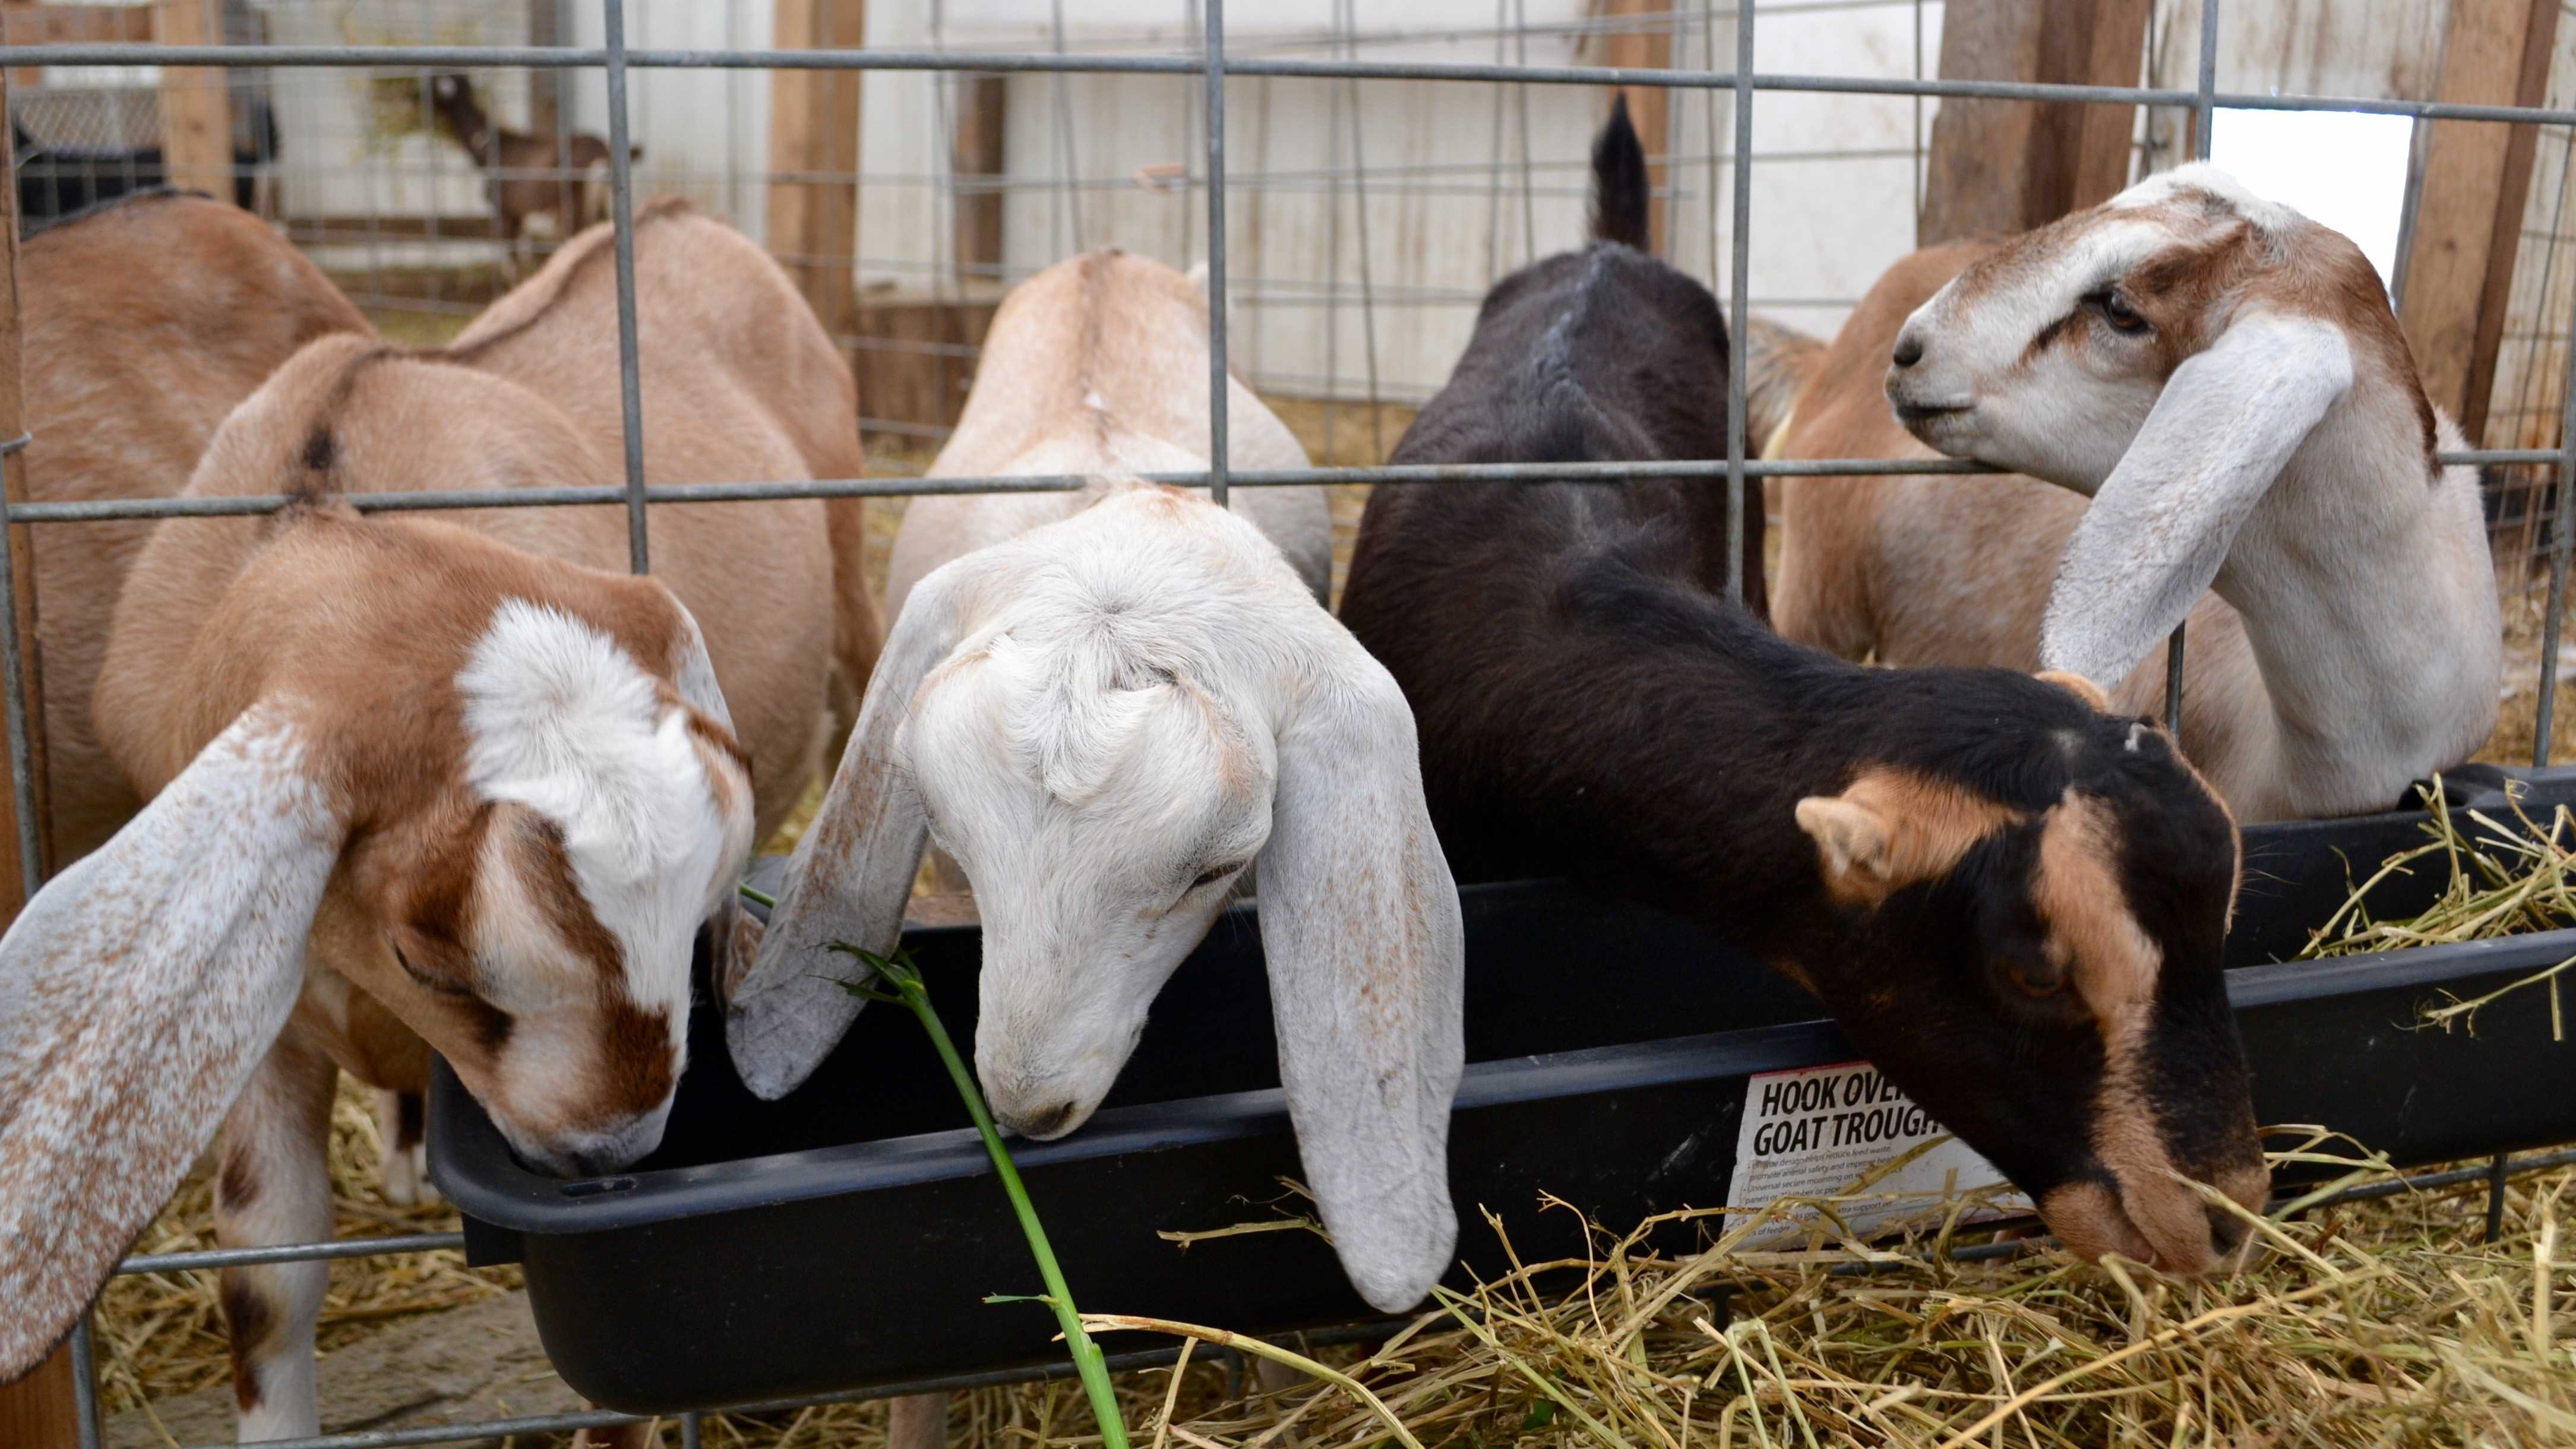 A few goats eat from a trough of straw at the Open House of Prairie Fruits Farm and Creamery on Wednesday, June 3.